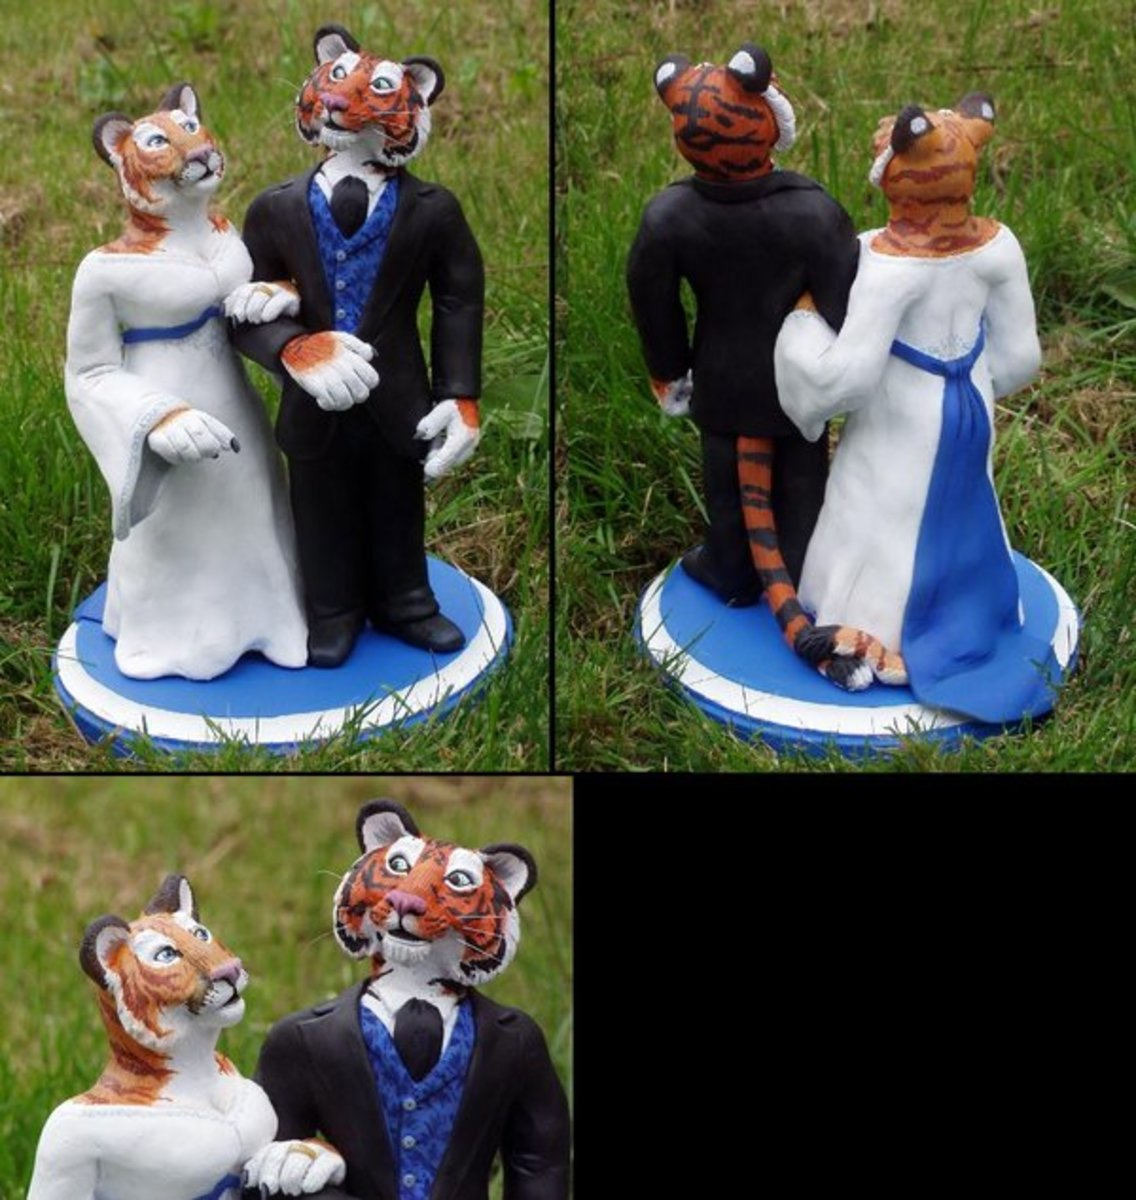 This tiger couple is dressed nicely in traditional bride and groom outfits.